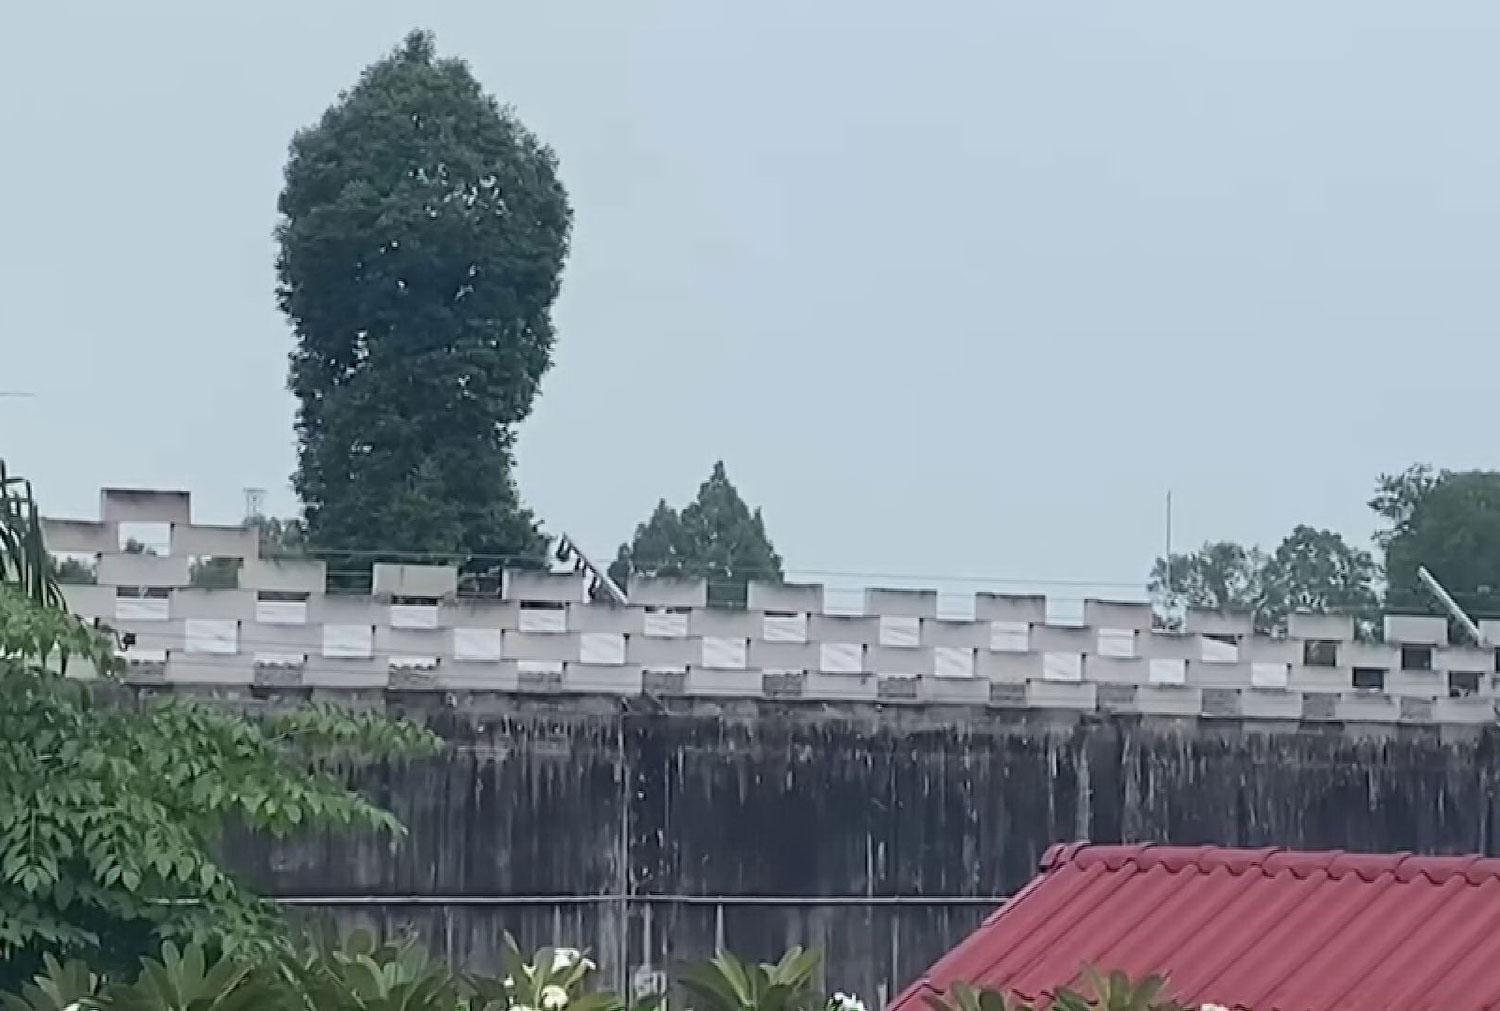 The wall around the Nakhon Si Thammarat Correctional Institution for Young Offenders, where a new cluster of Covid-19 disease has been found. (Photo: Nujaree Rakrun)